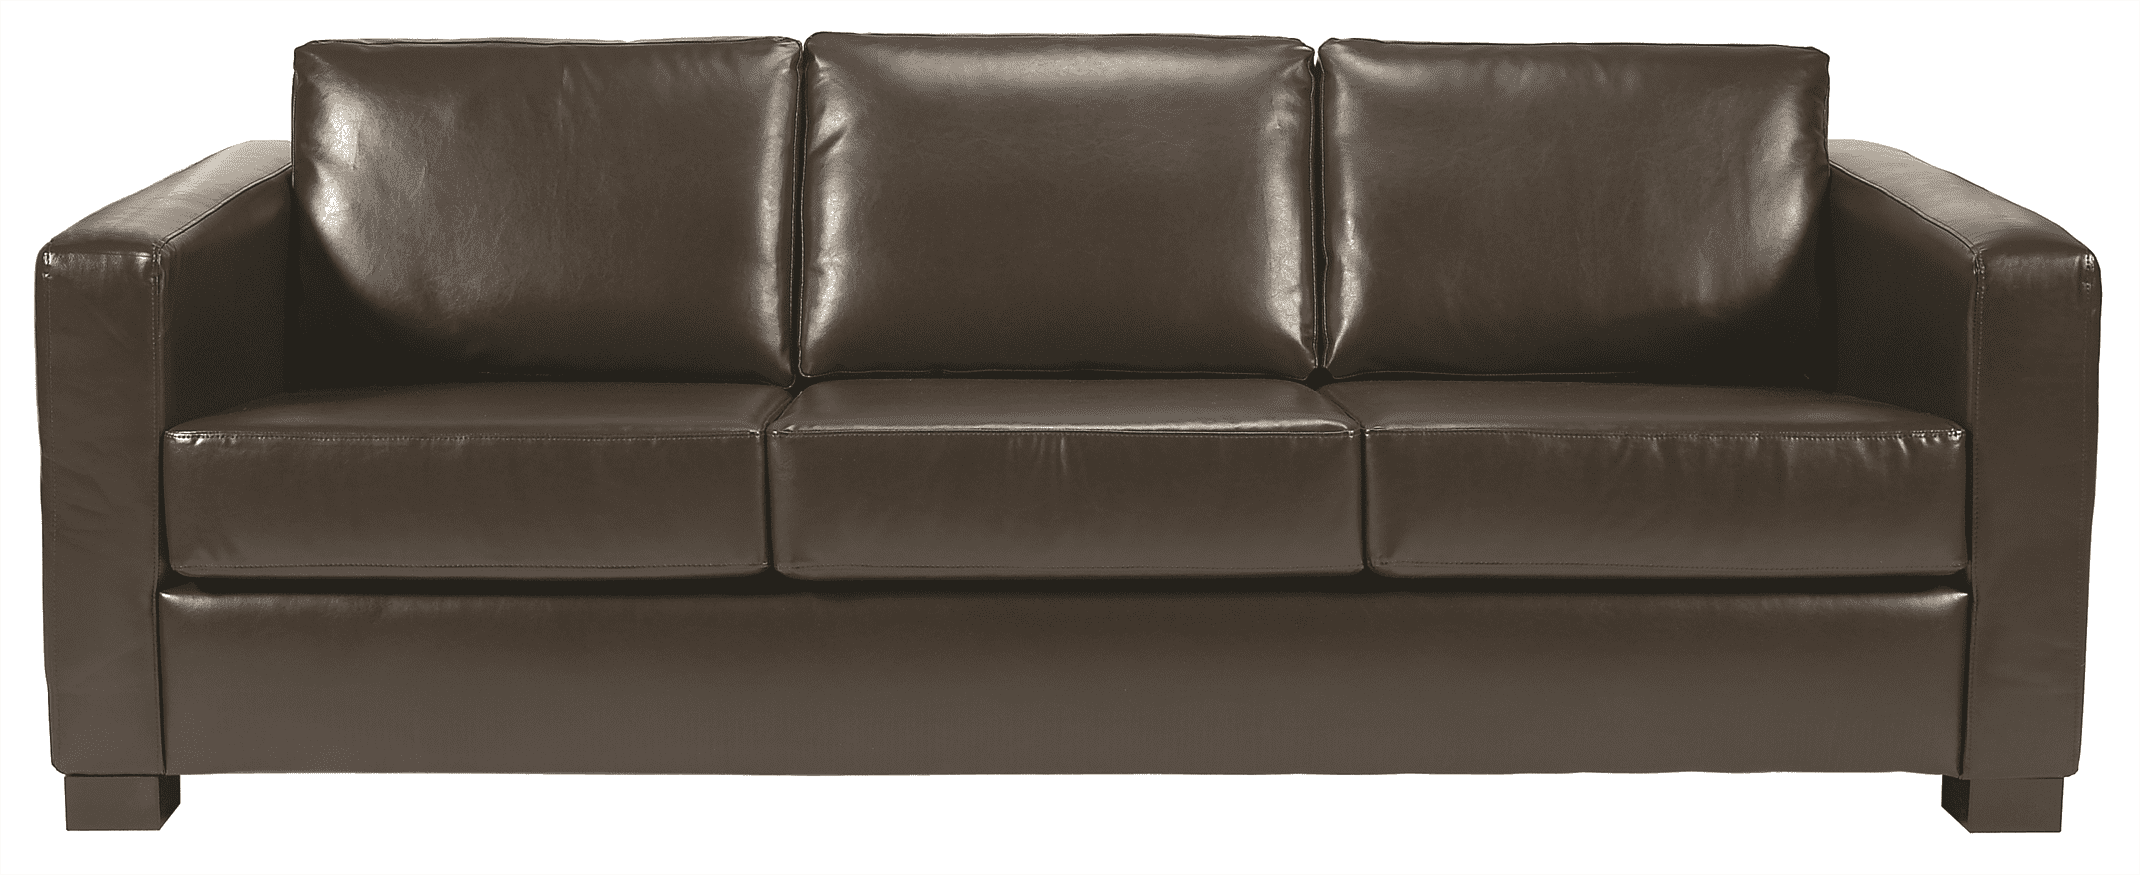 Chorus three seater sofa UPH faux leather dark brown